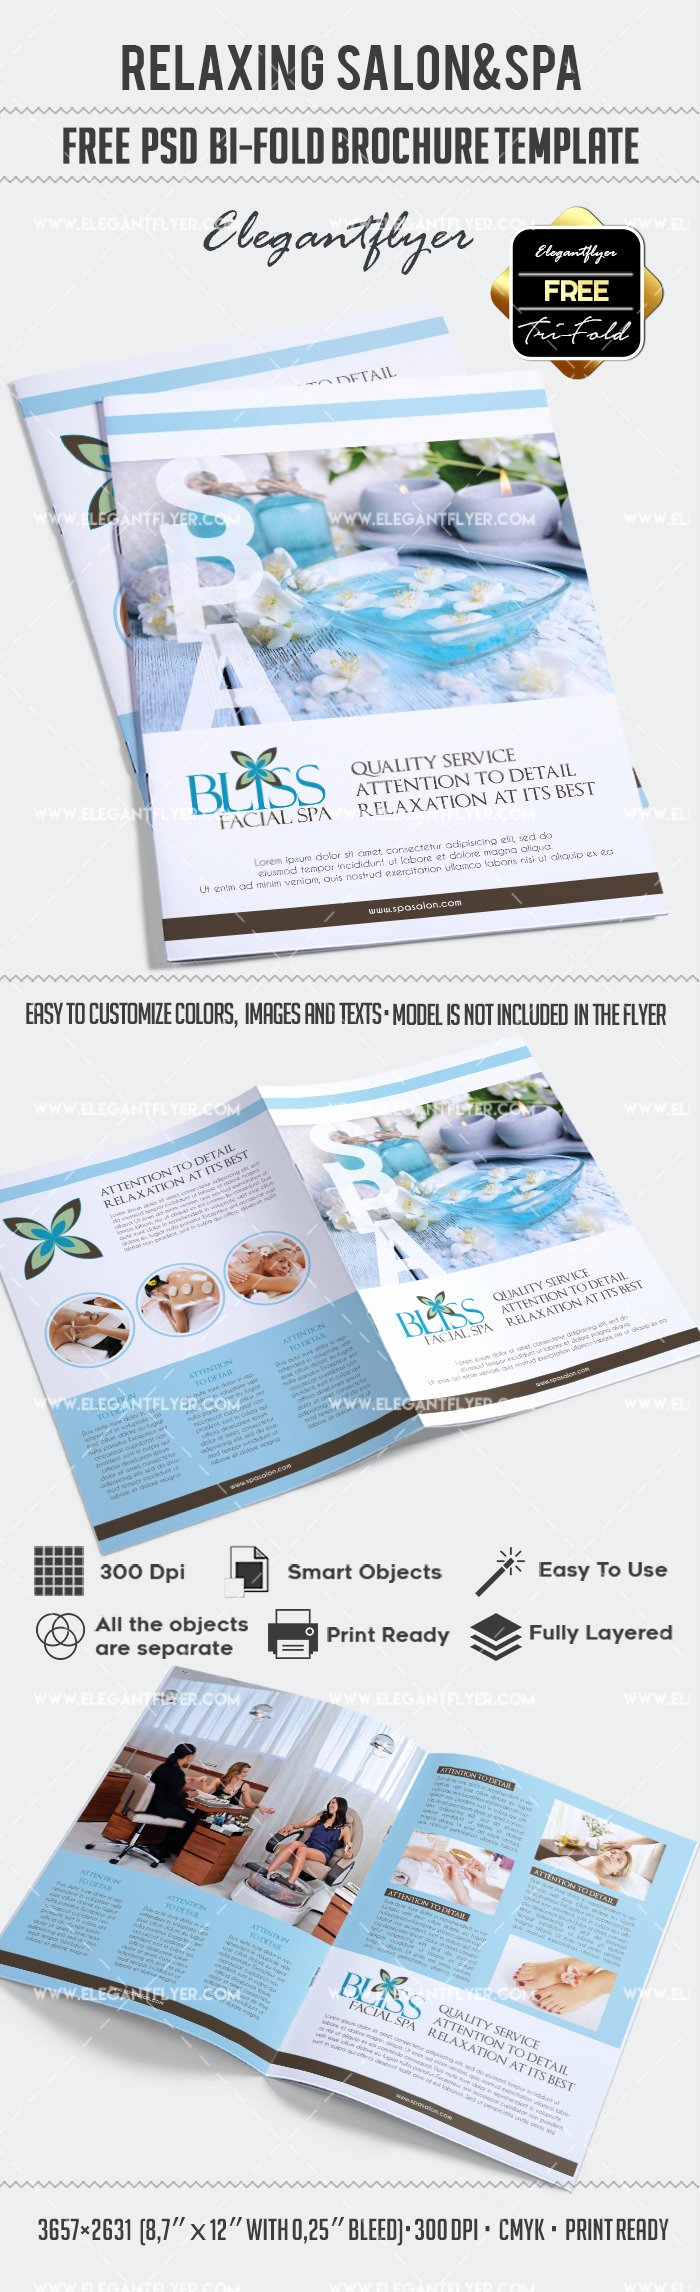 Free Relaxing Salon for Bi Fold Psd Brochure – by Elegantflyer